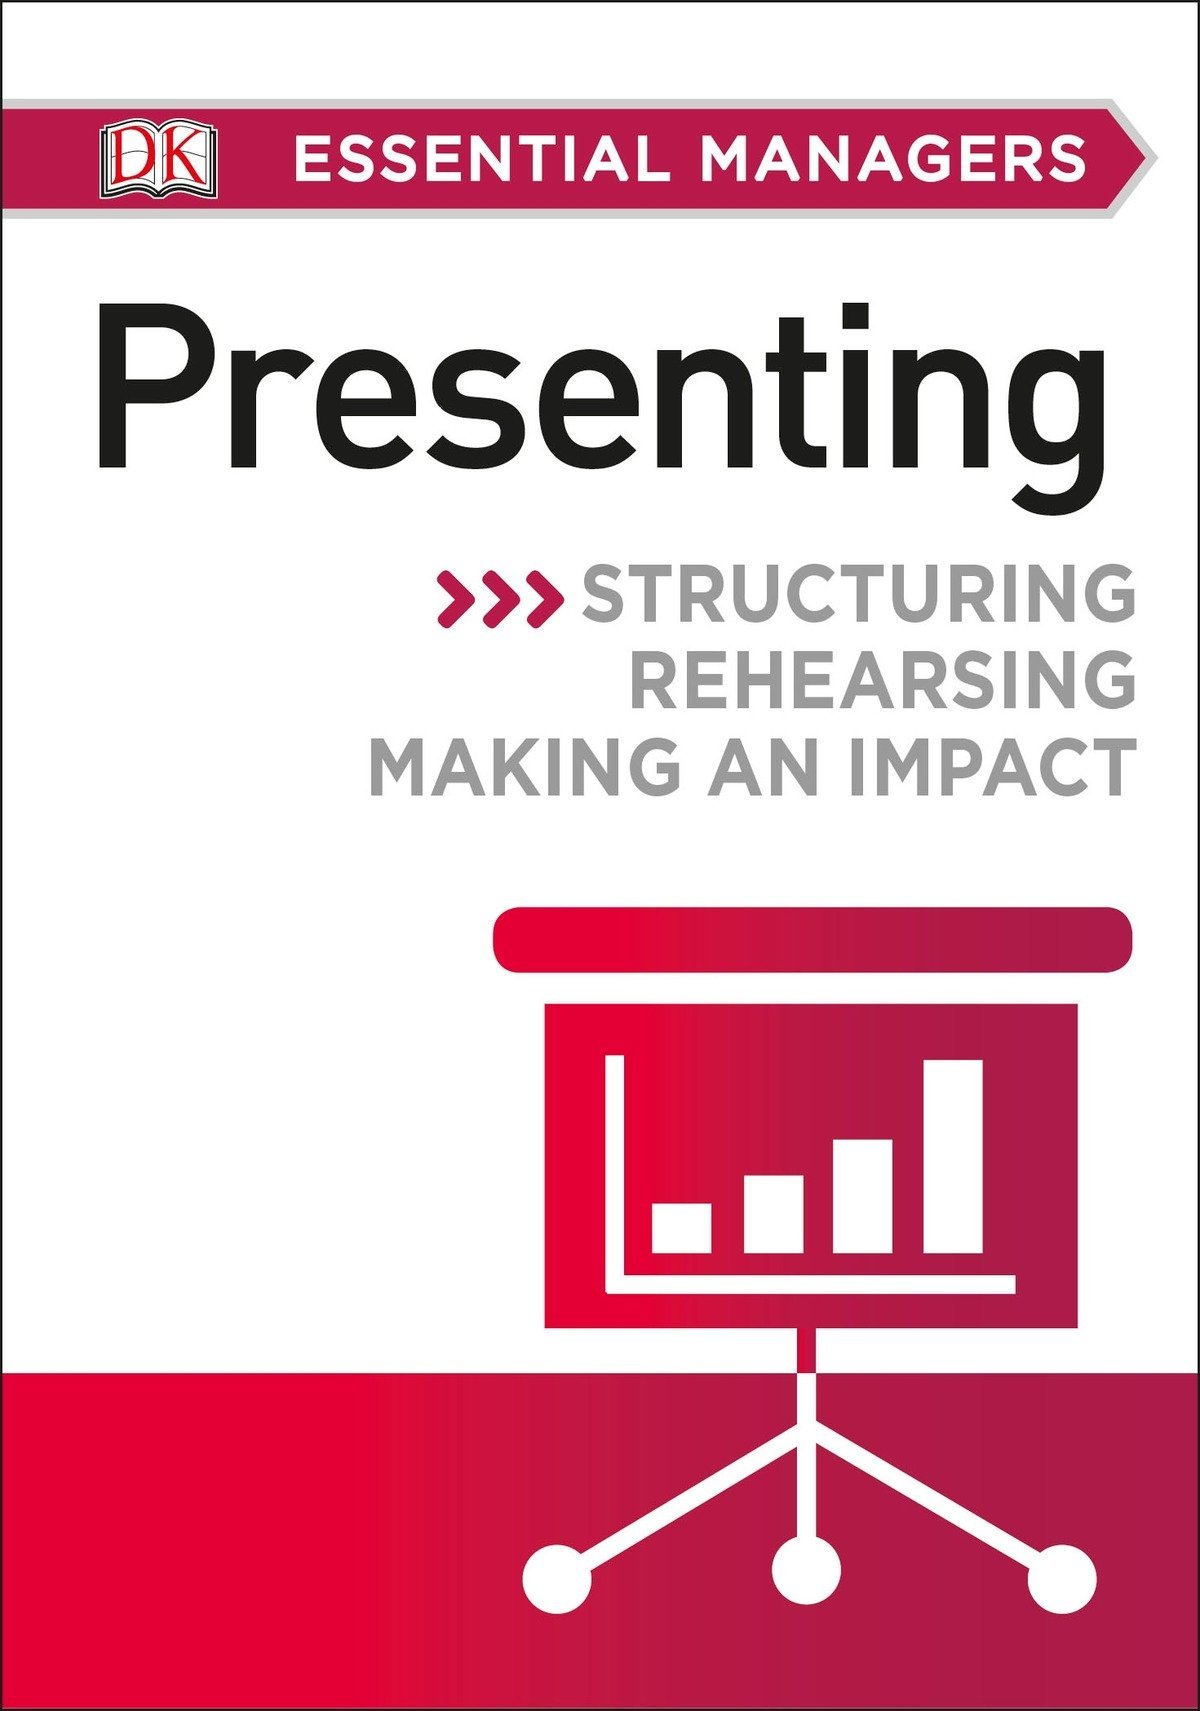 DK Essential Managers: Presenting: Structuring, Rehearsing, Making an Impact ebook